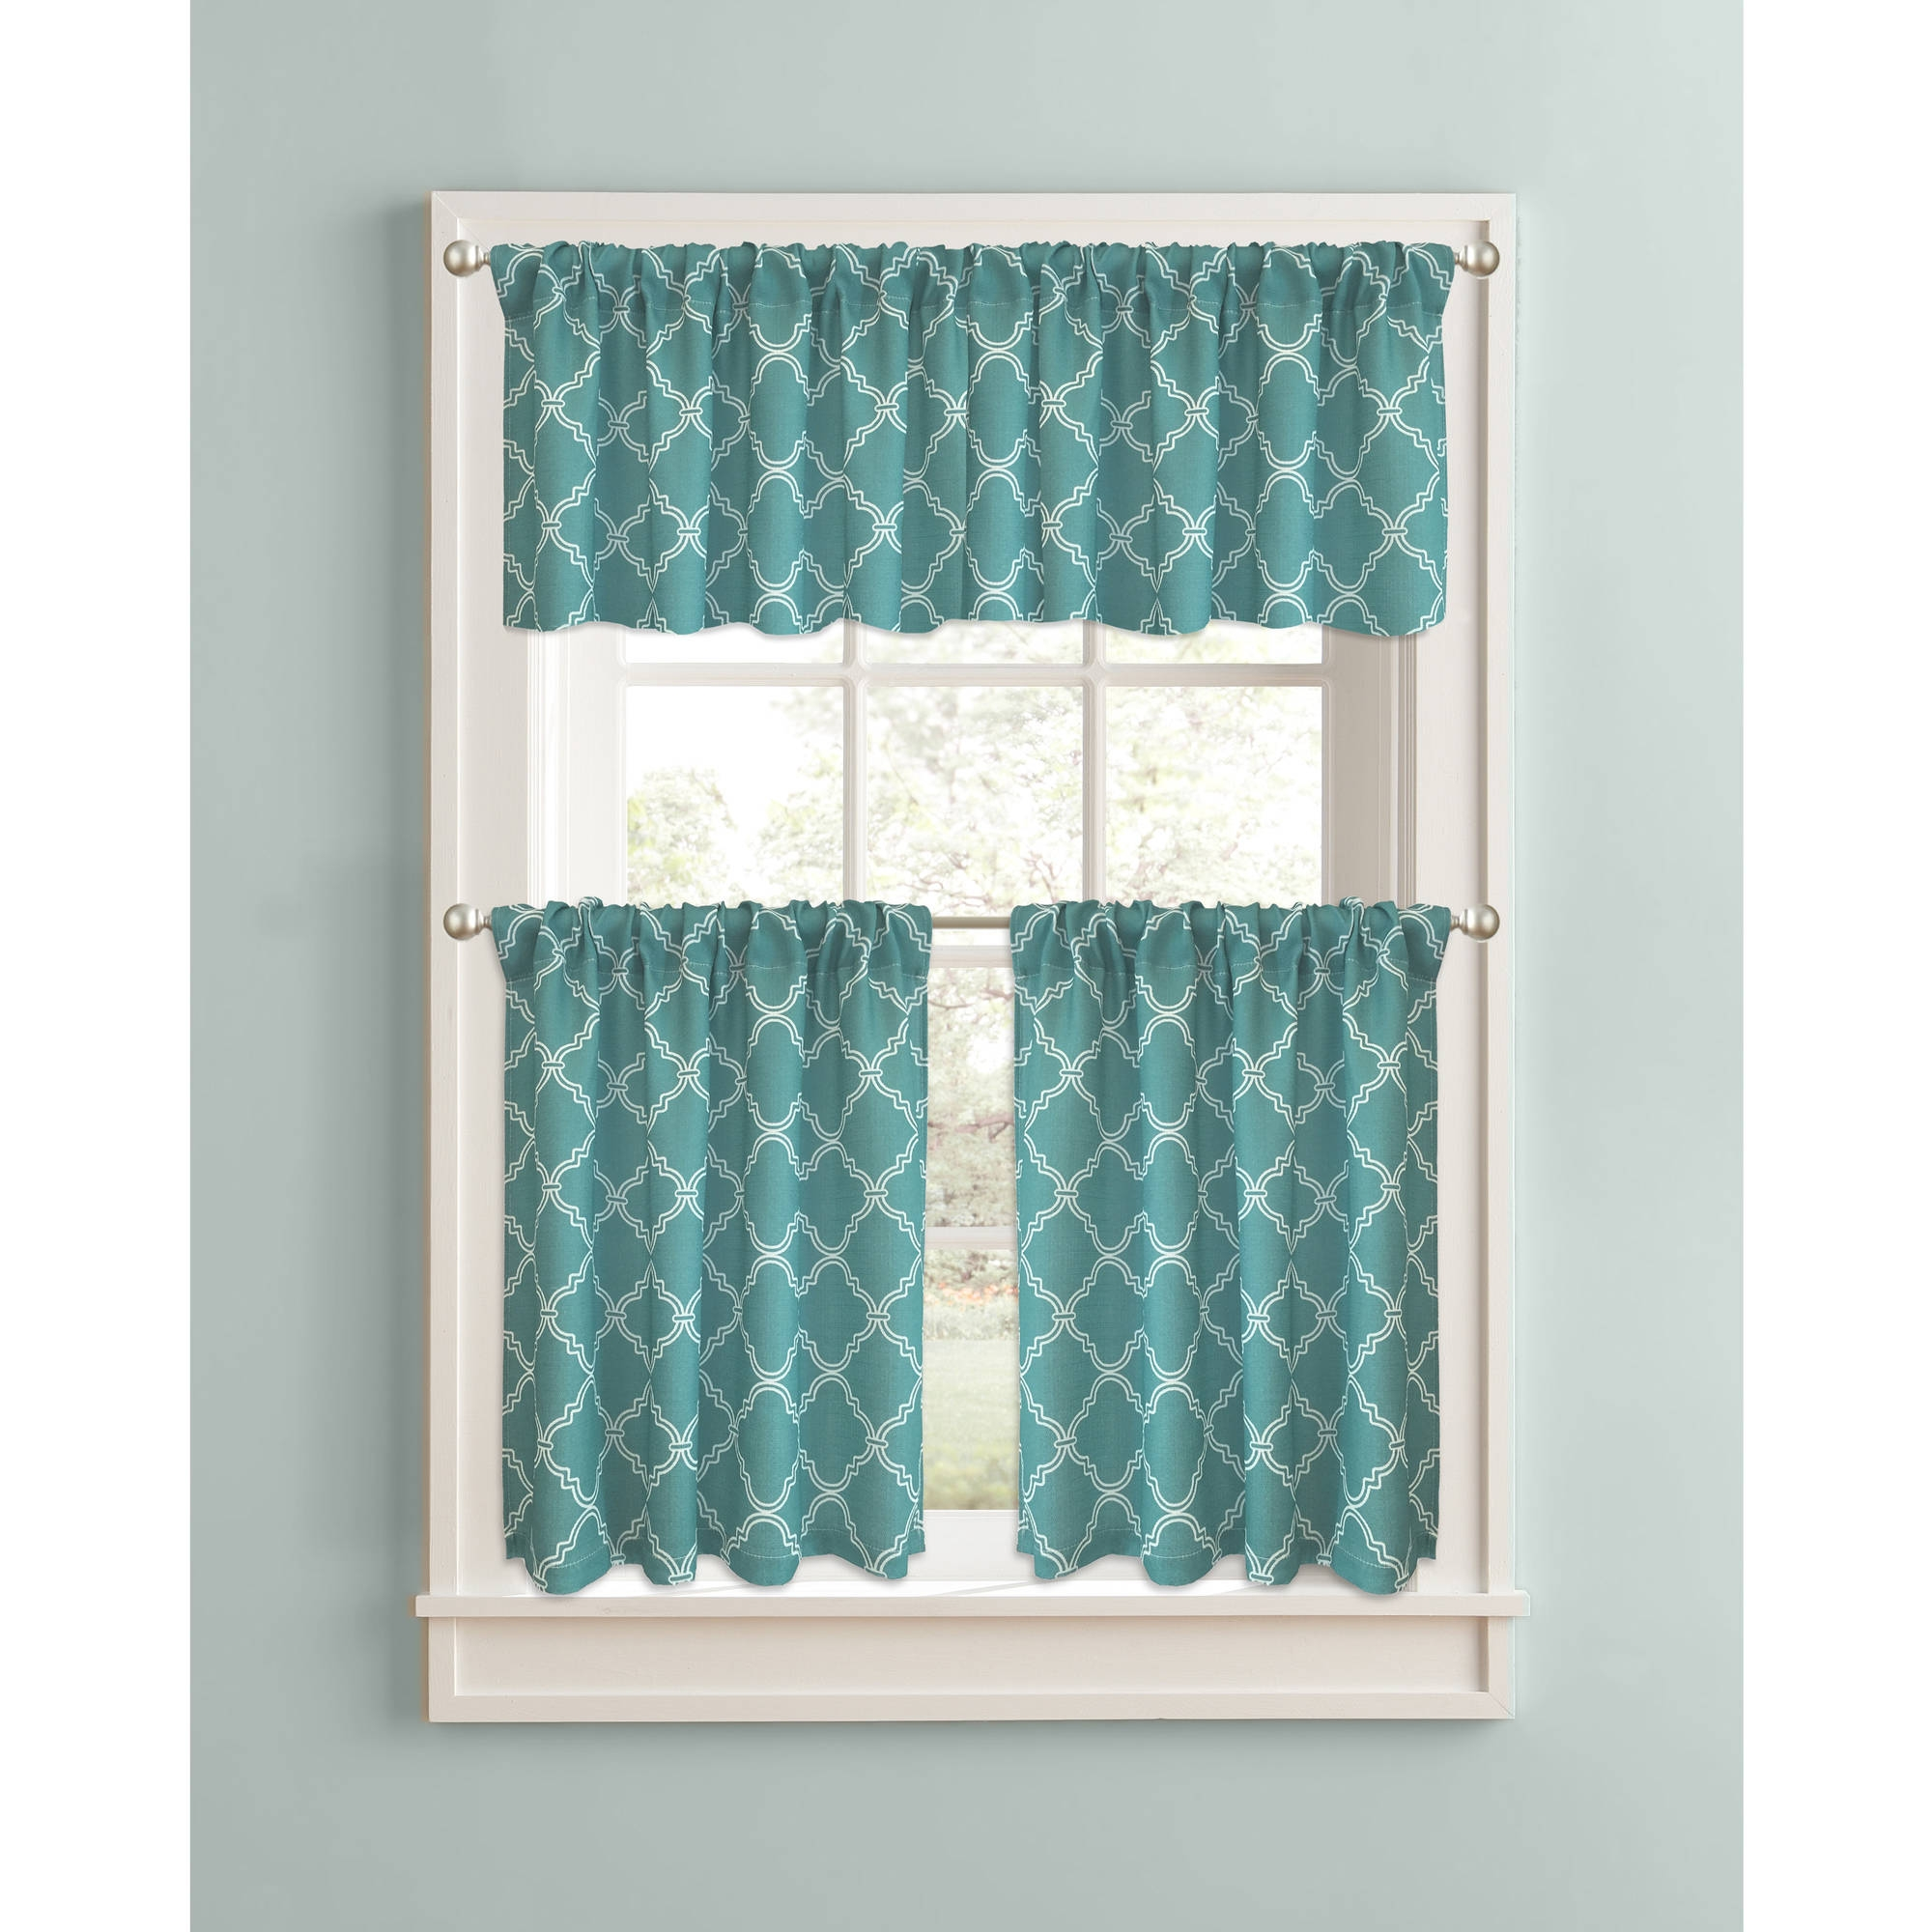 Better Homes And Gardens Trellis Kitchen Curtains Set Of 2 Inside Turquoise Trellis Curtains (View 13 of 25)